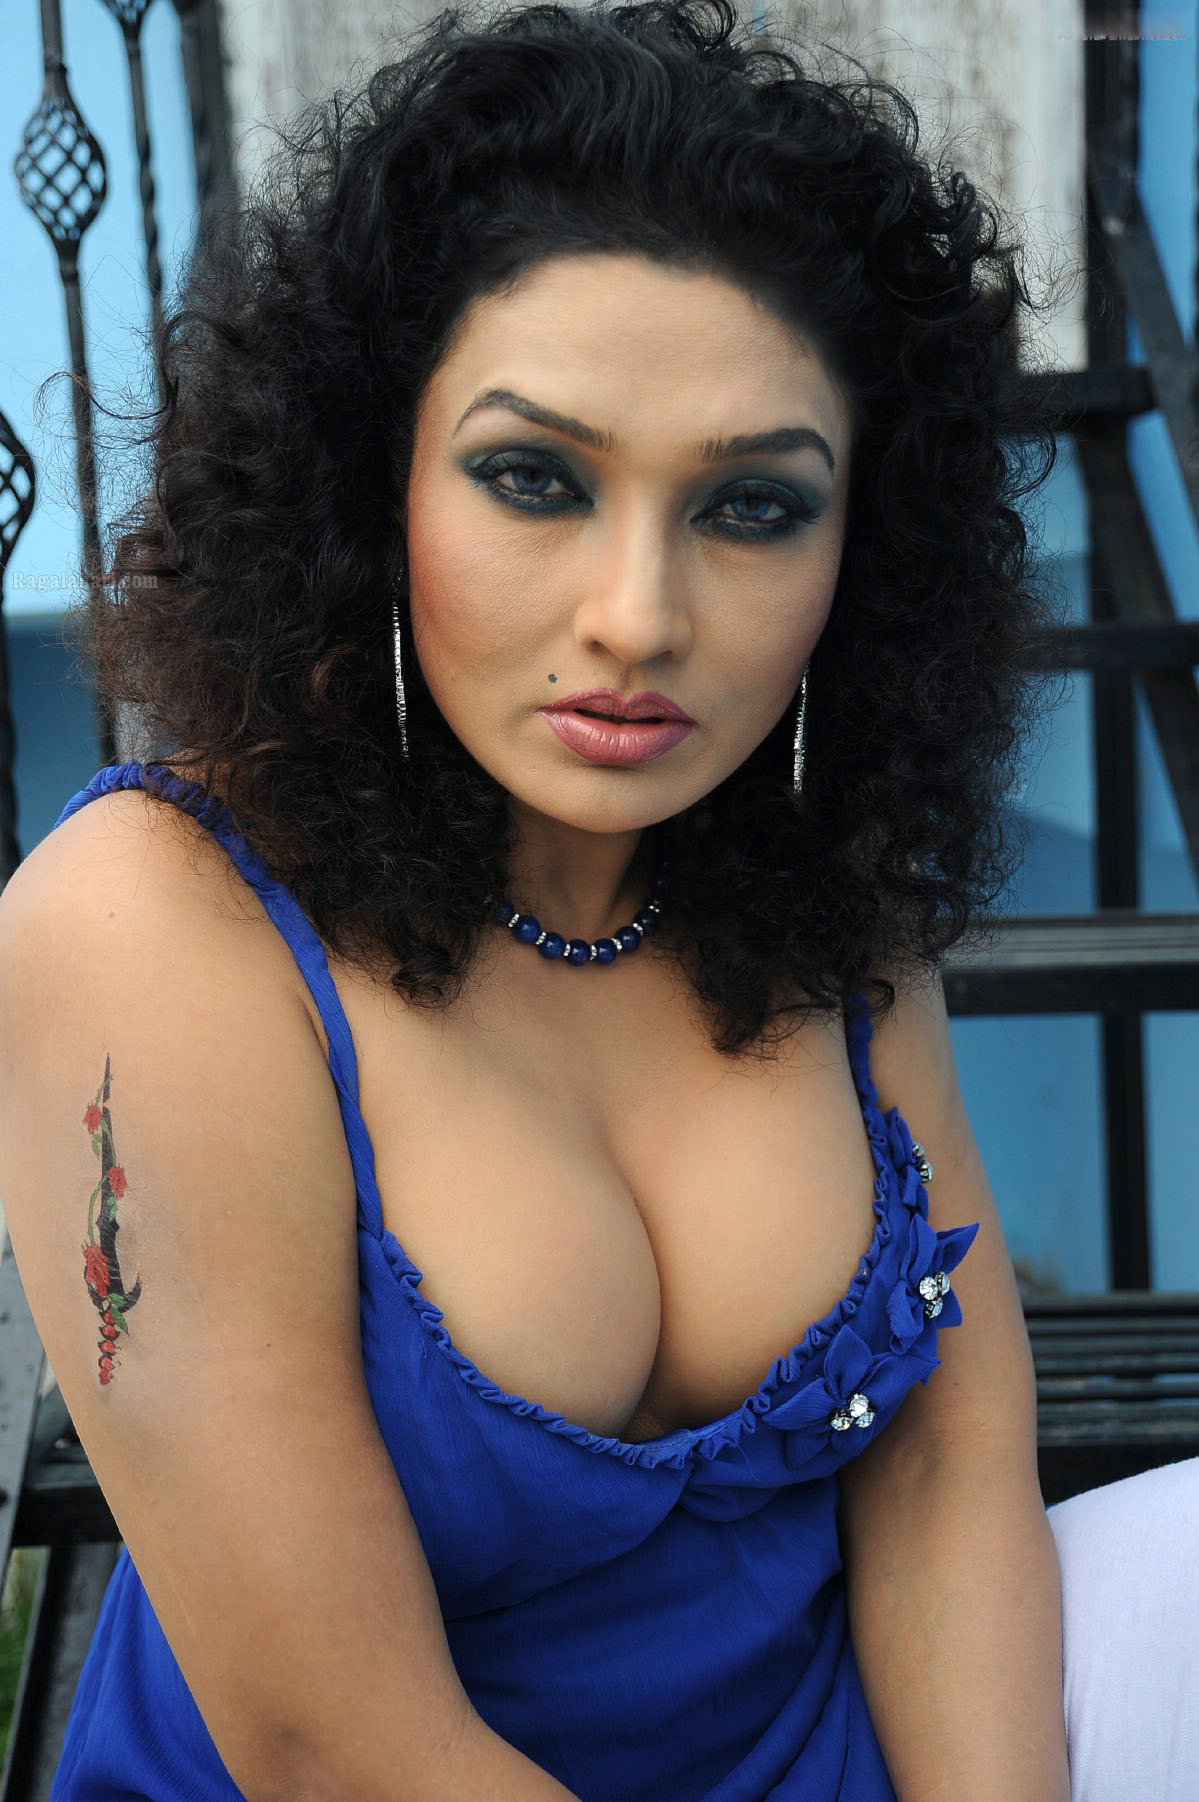 1054 desi hot girl in trial room naked - 5 5